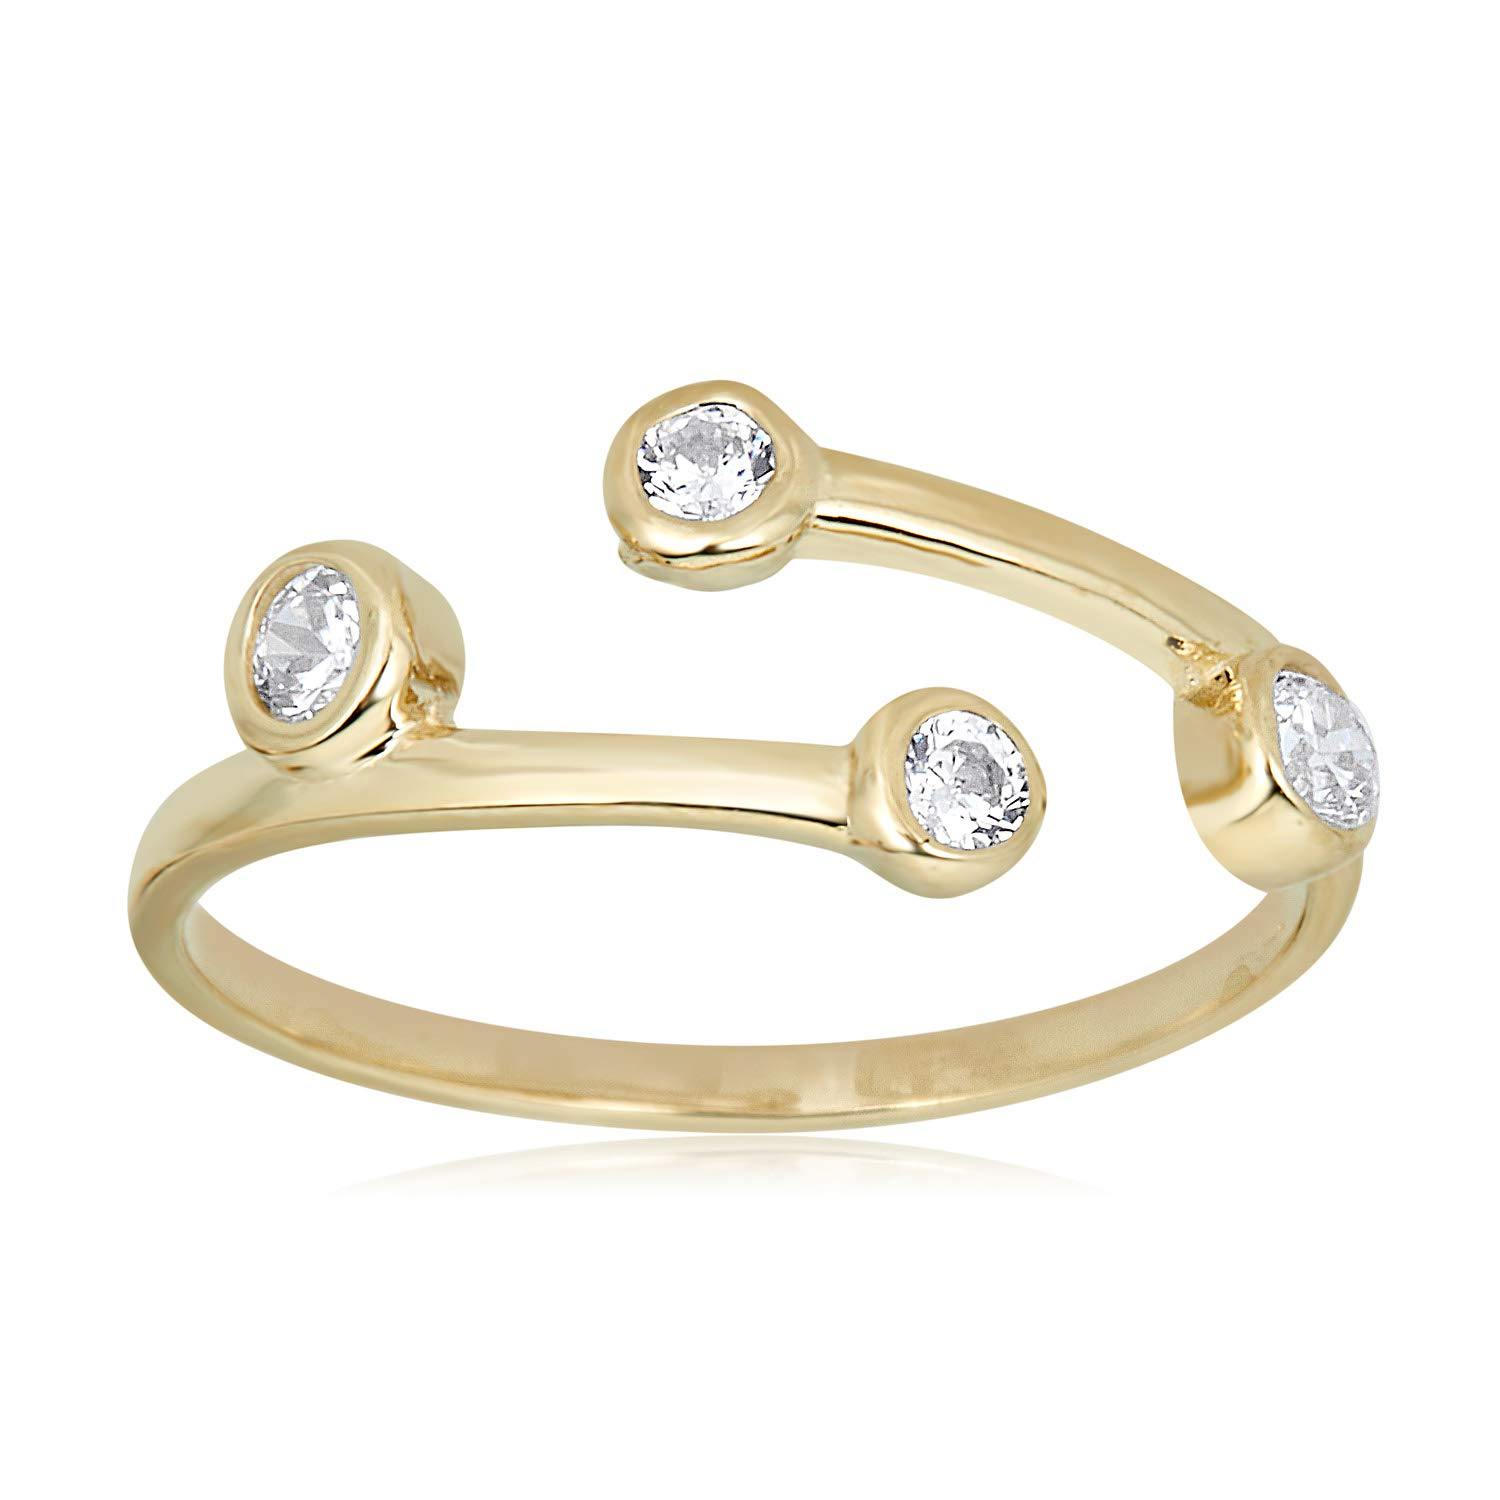 AVORA 10K Yellow Gold Adjustable Bypass Toe Ring with Bezel-Set Simulated Diamond CZ by AVORA